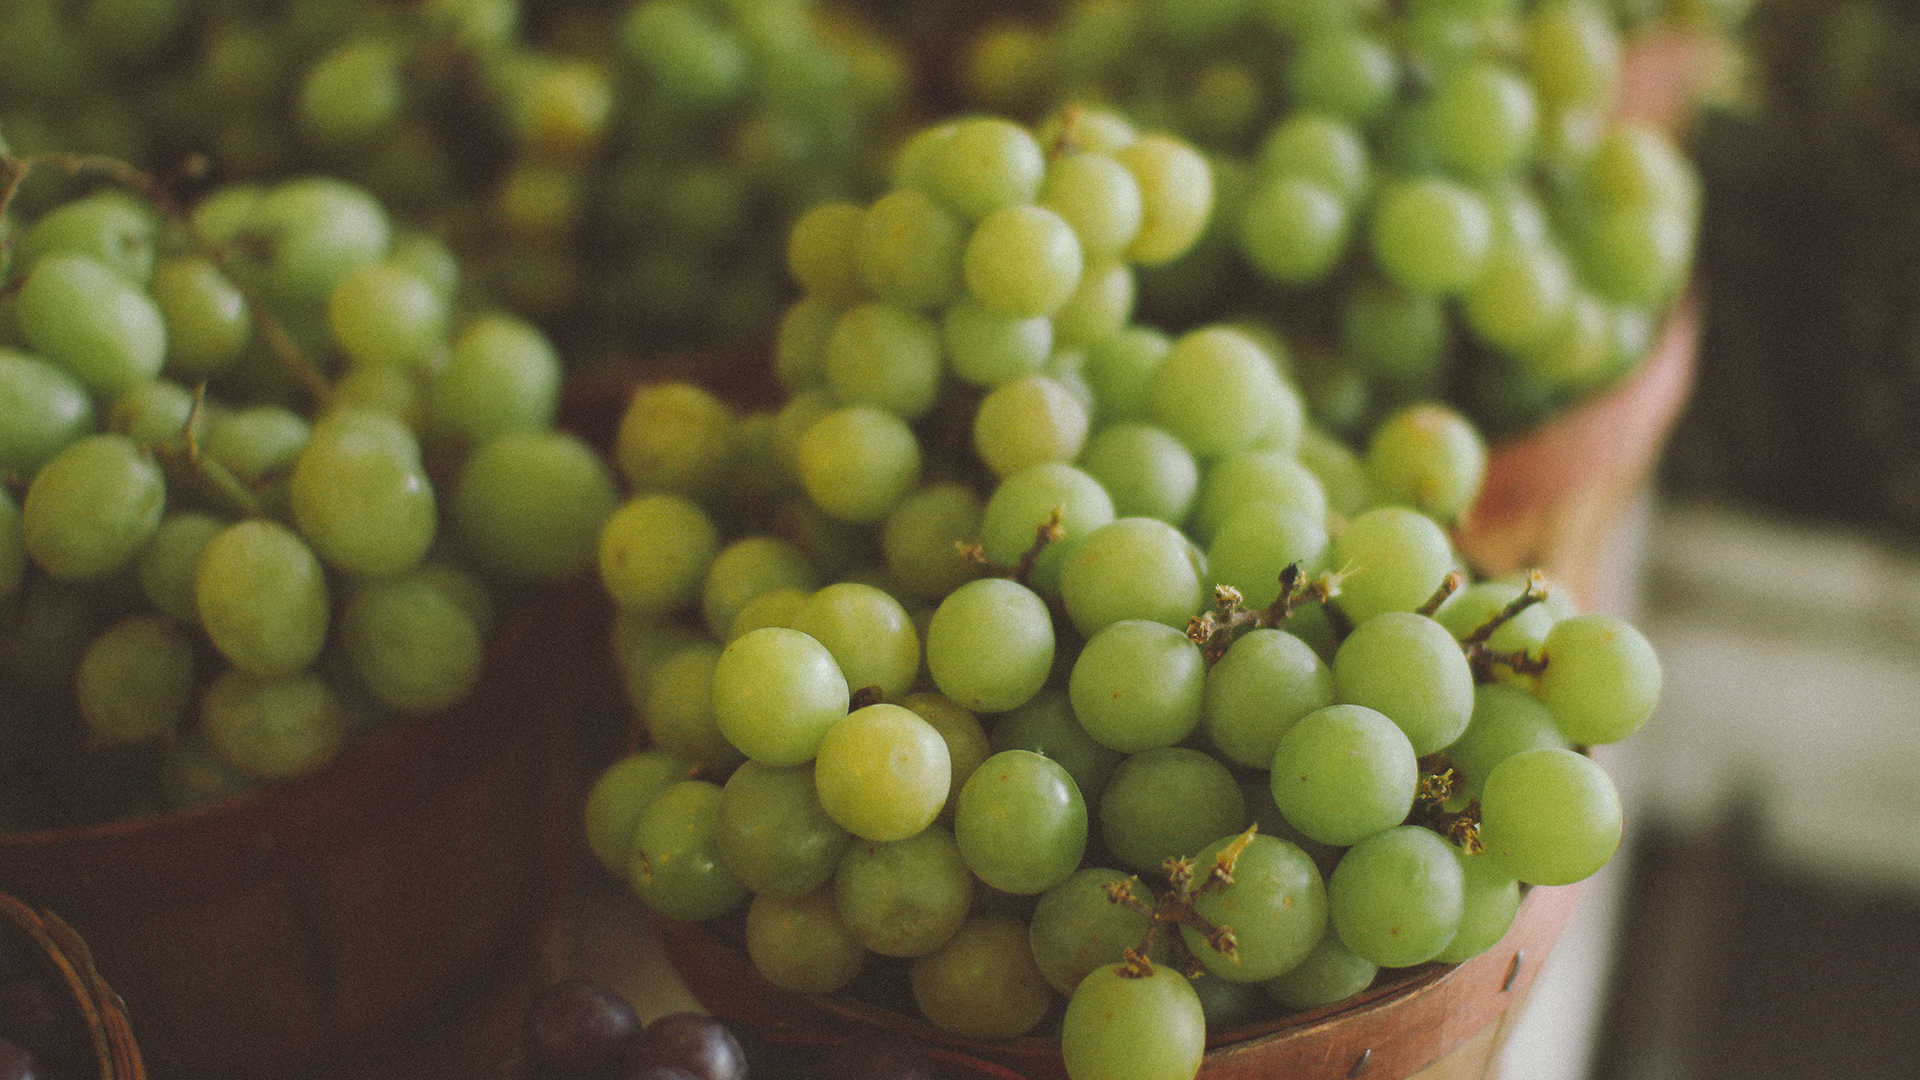 grapes photography fruit food